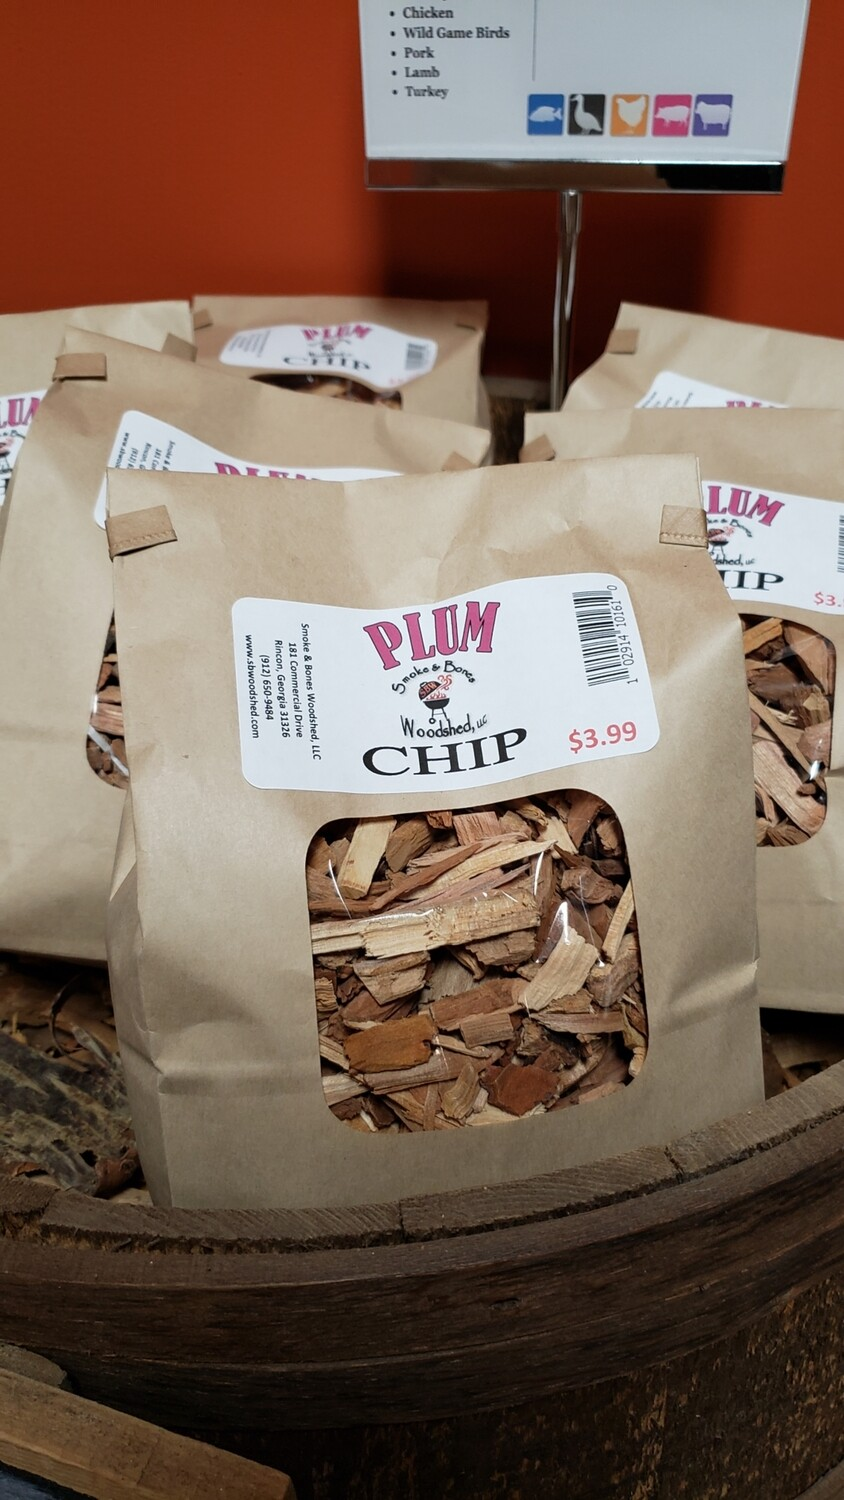 Wood, Plum Chip 1lb